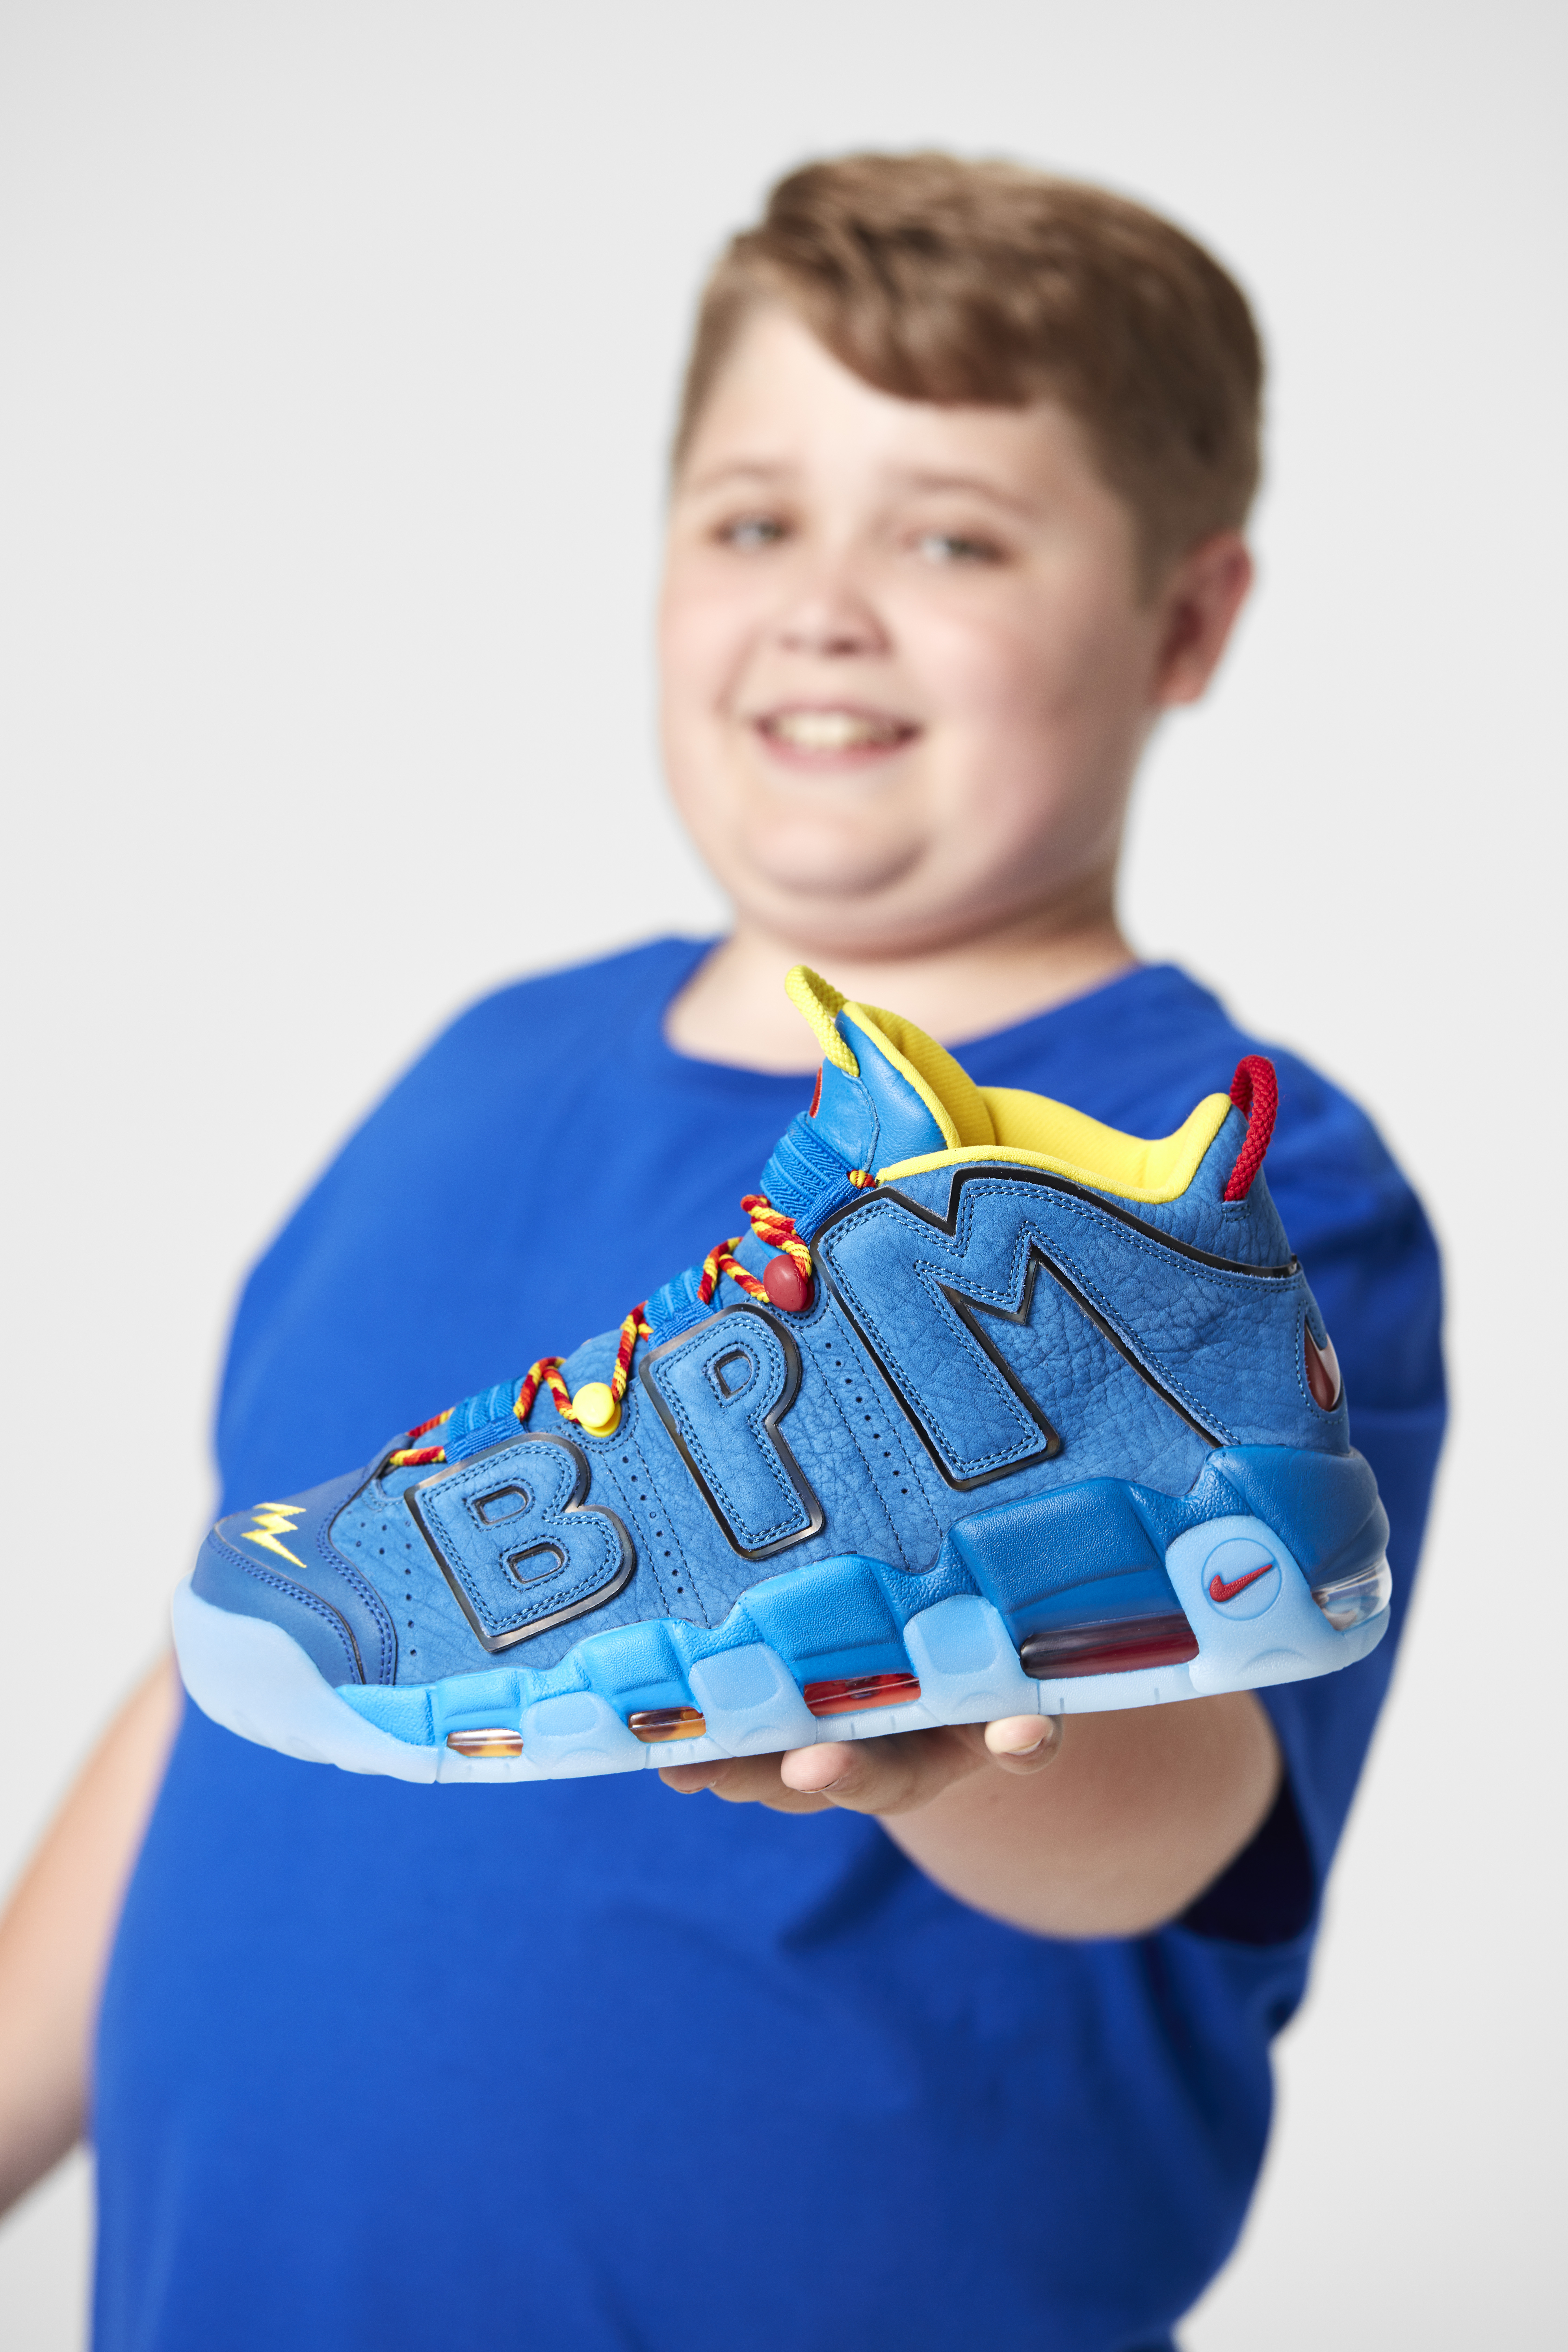 Nike x Doernbecher Freestyle Collection 2017 - Nike Air More Uptempo x Brody Miller